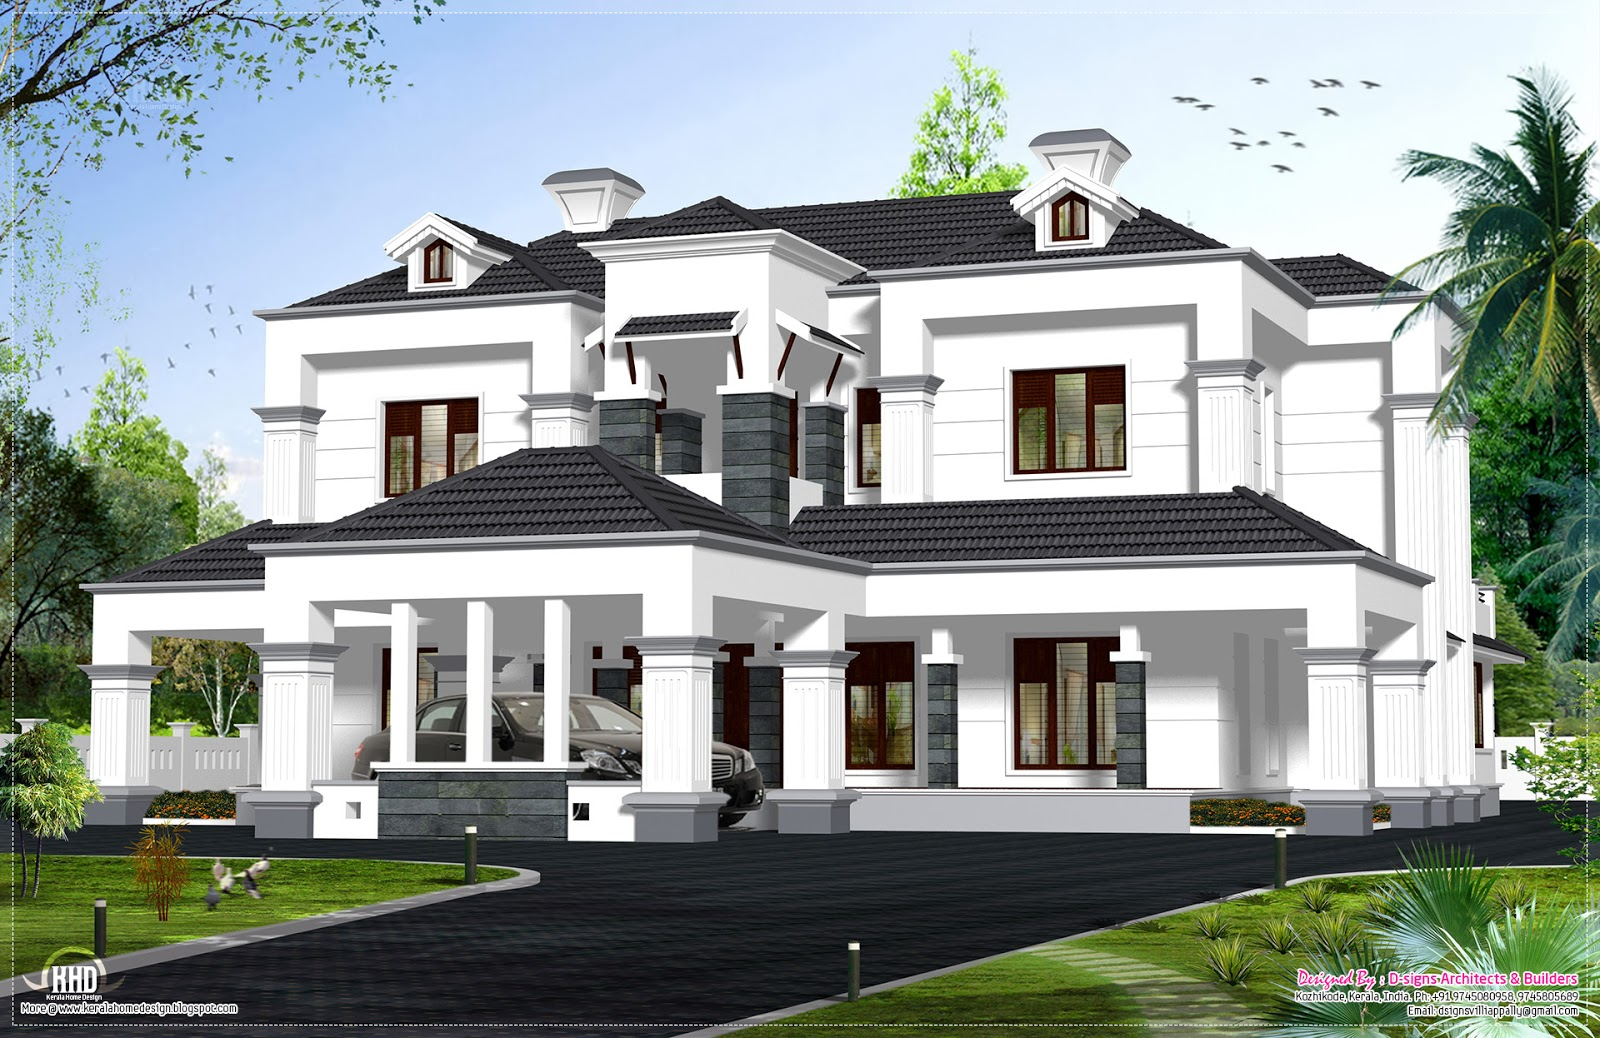 victorian model luxury house - Victorian House Design